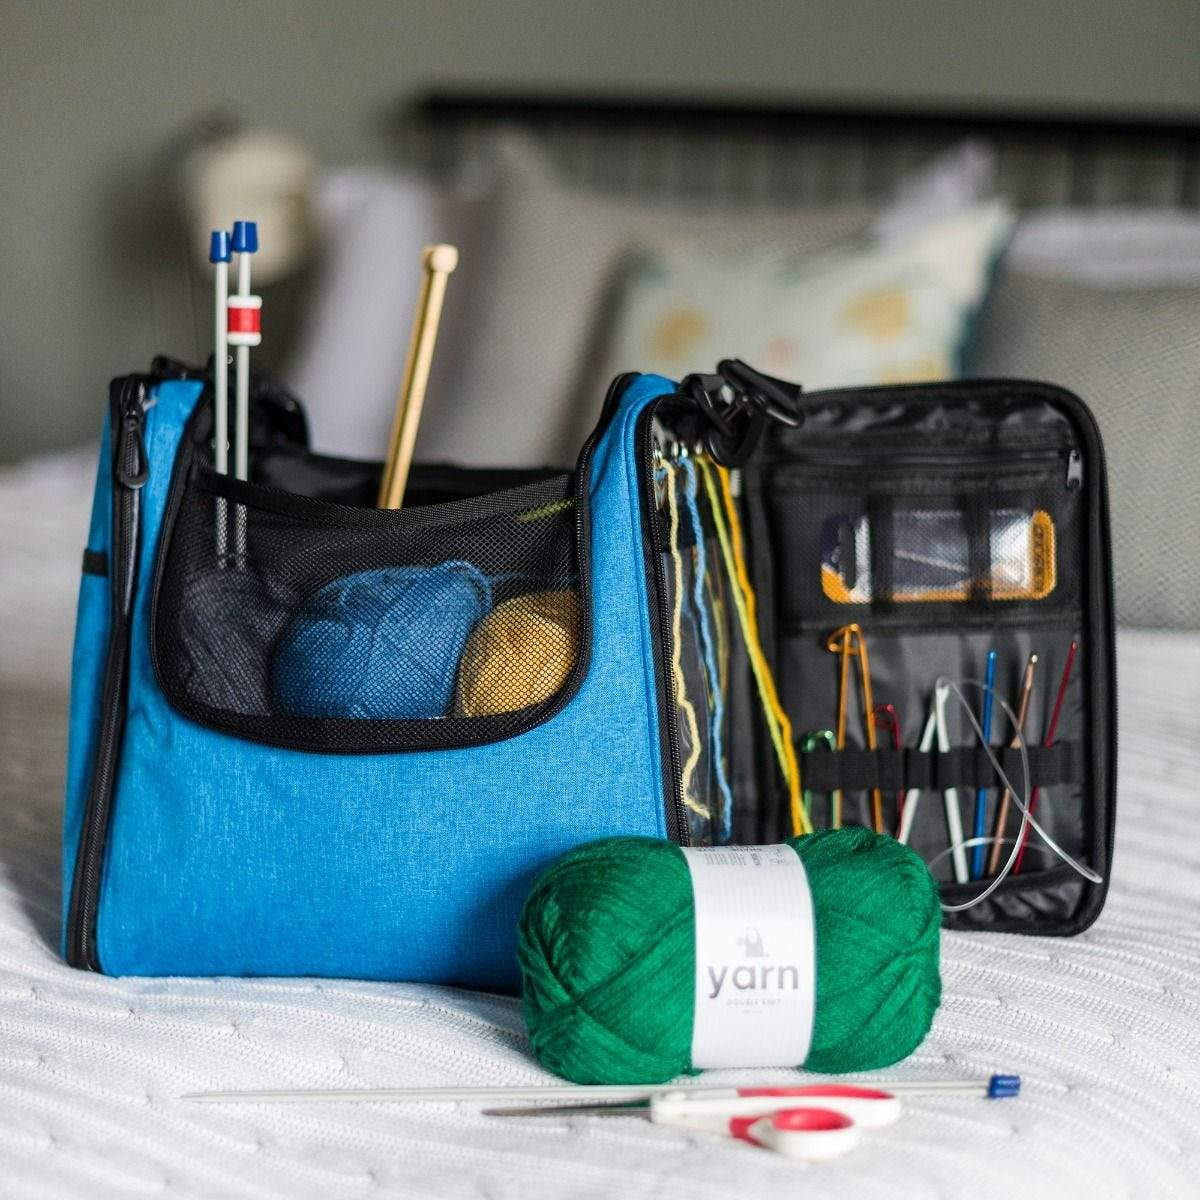 Yarn Knitting Storage Bag tribeyarns Bags & Cases Blue